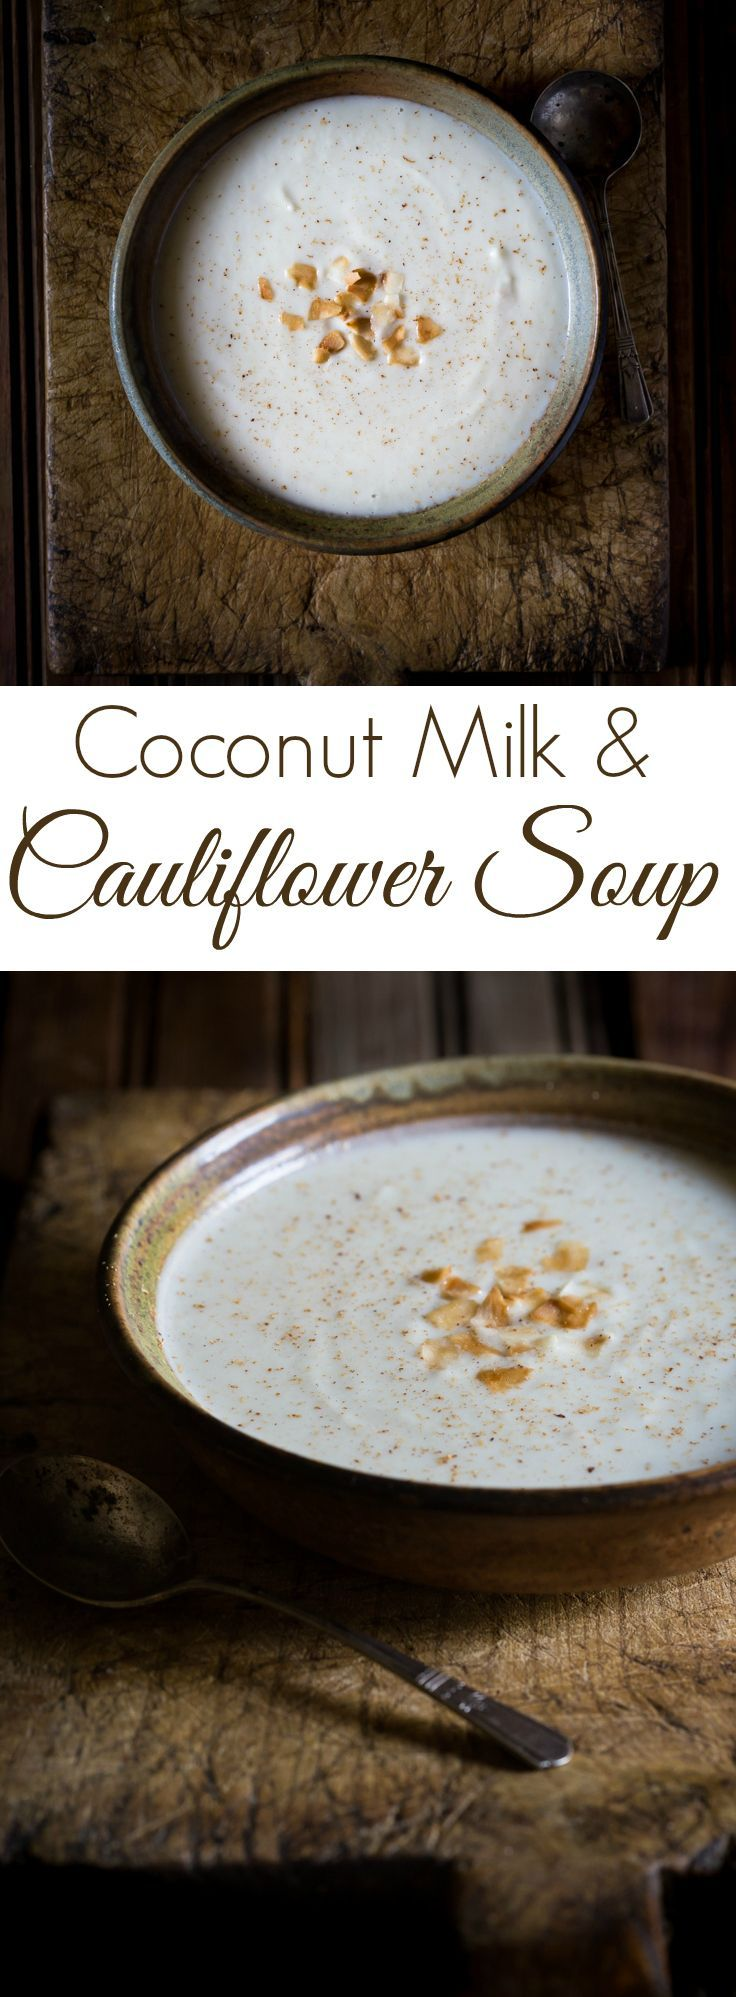 A fabulously delicious Cauliflower and Coconut Milk Soup with just a hint of nutmeg!   vegan   vegetarian   gluten free   dairy free   whole 30   paleo   primal  